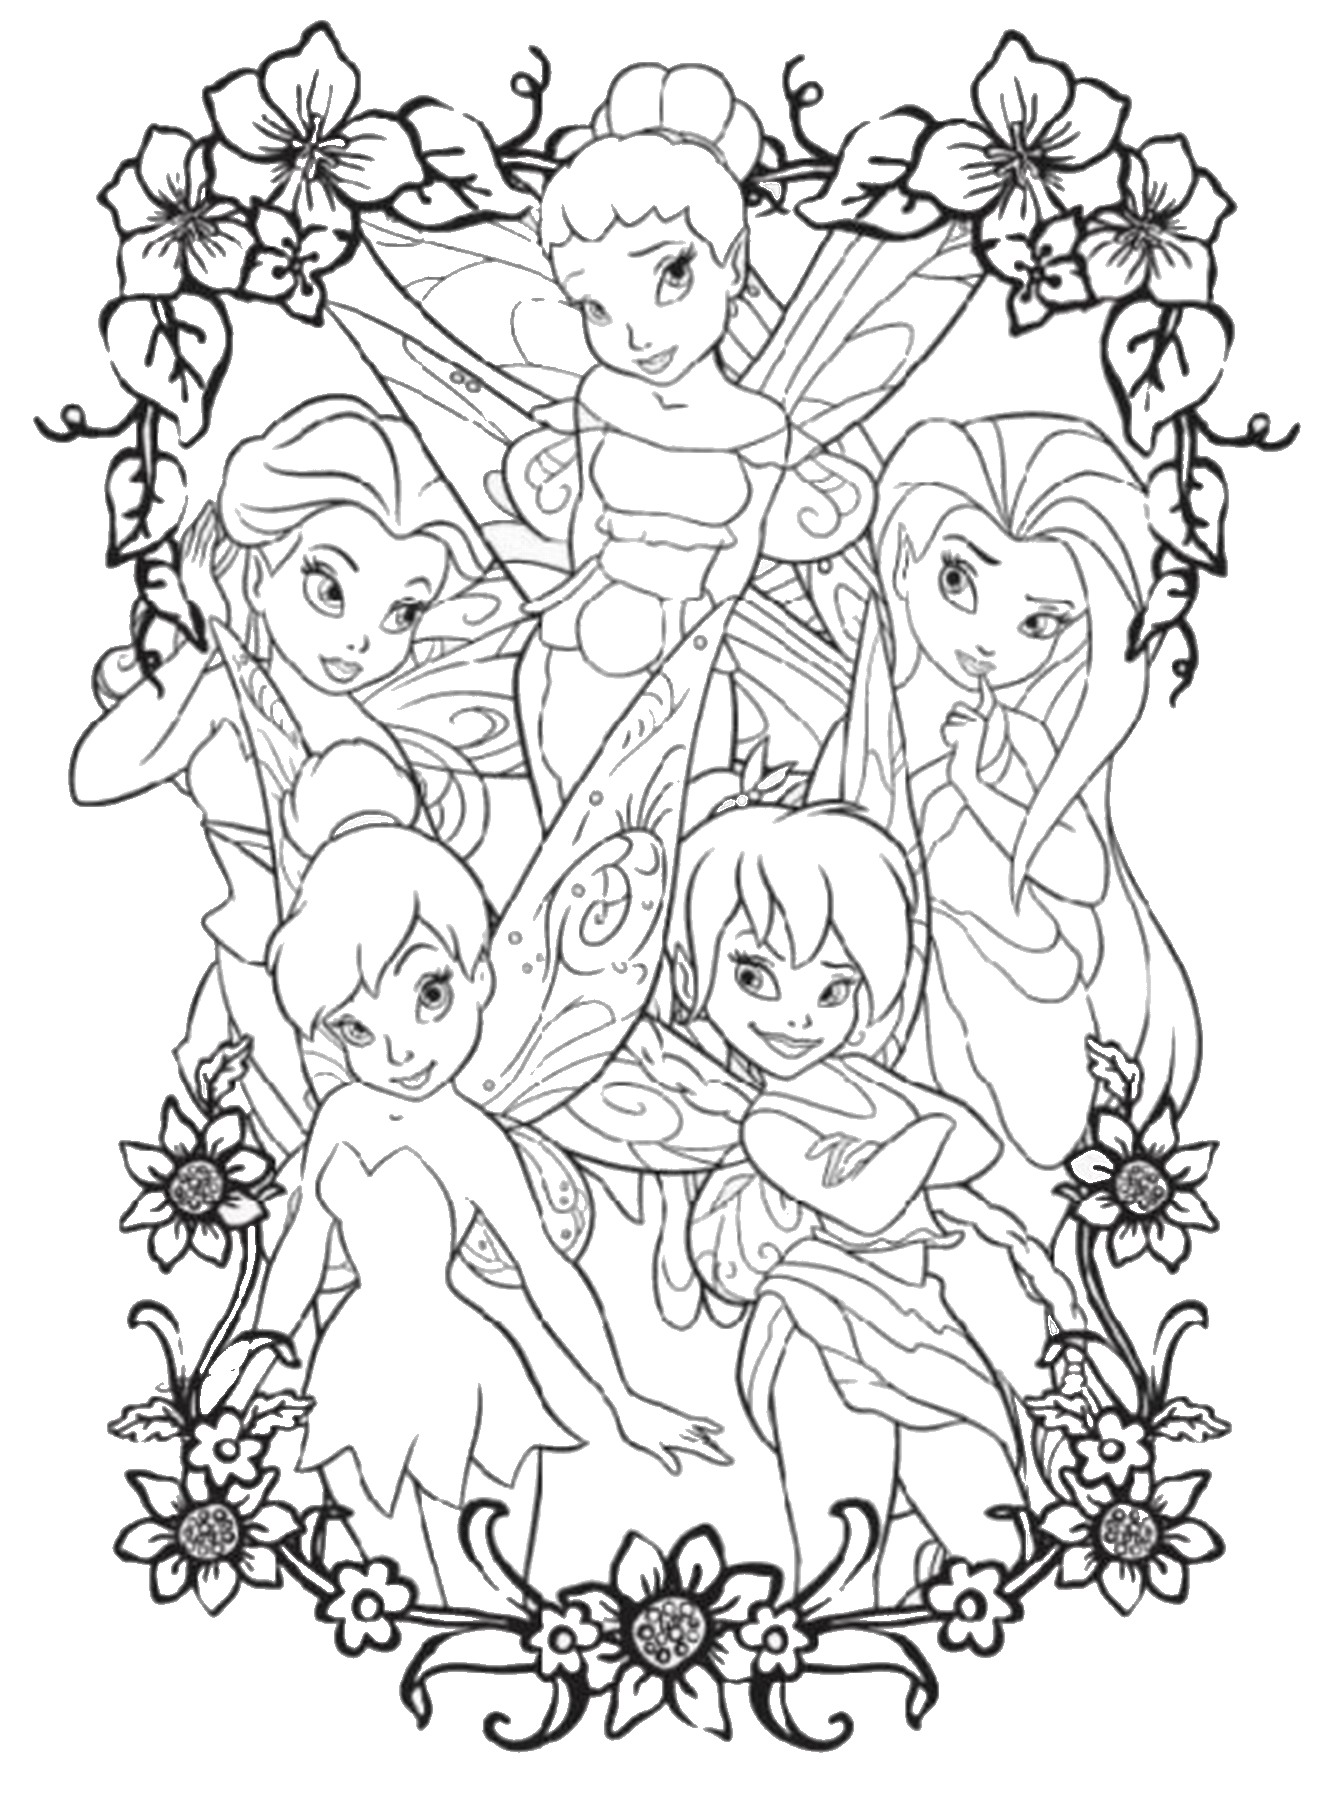 tinkerbell coloring sheets coloring pages tinkerbell coloring pages and clip art tinkerbell coloring sheets